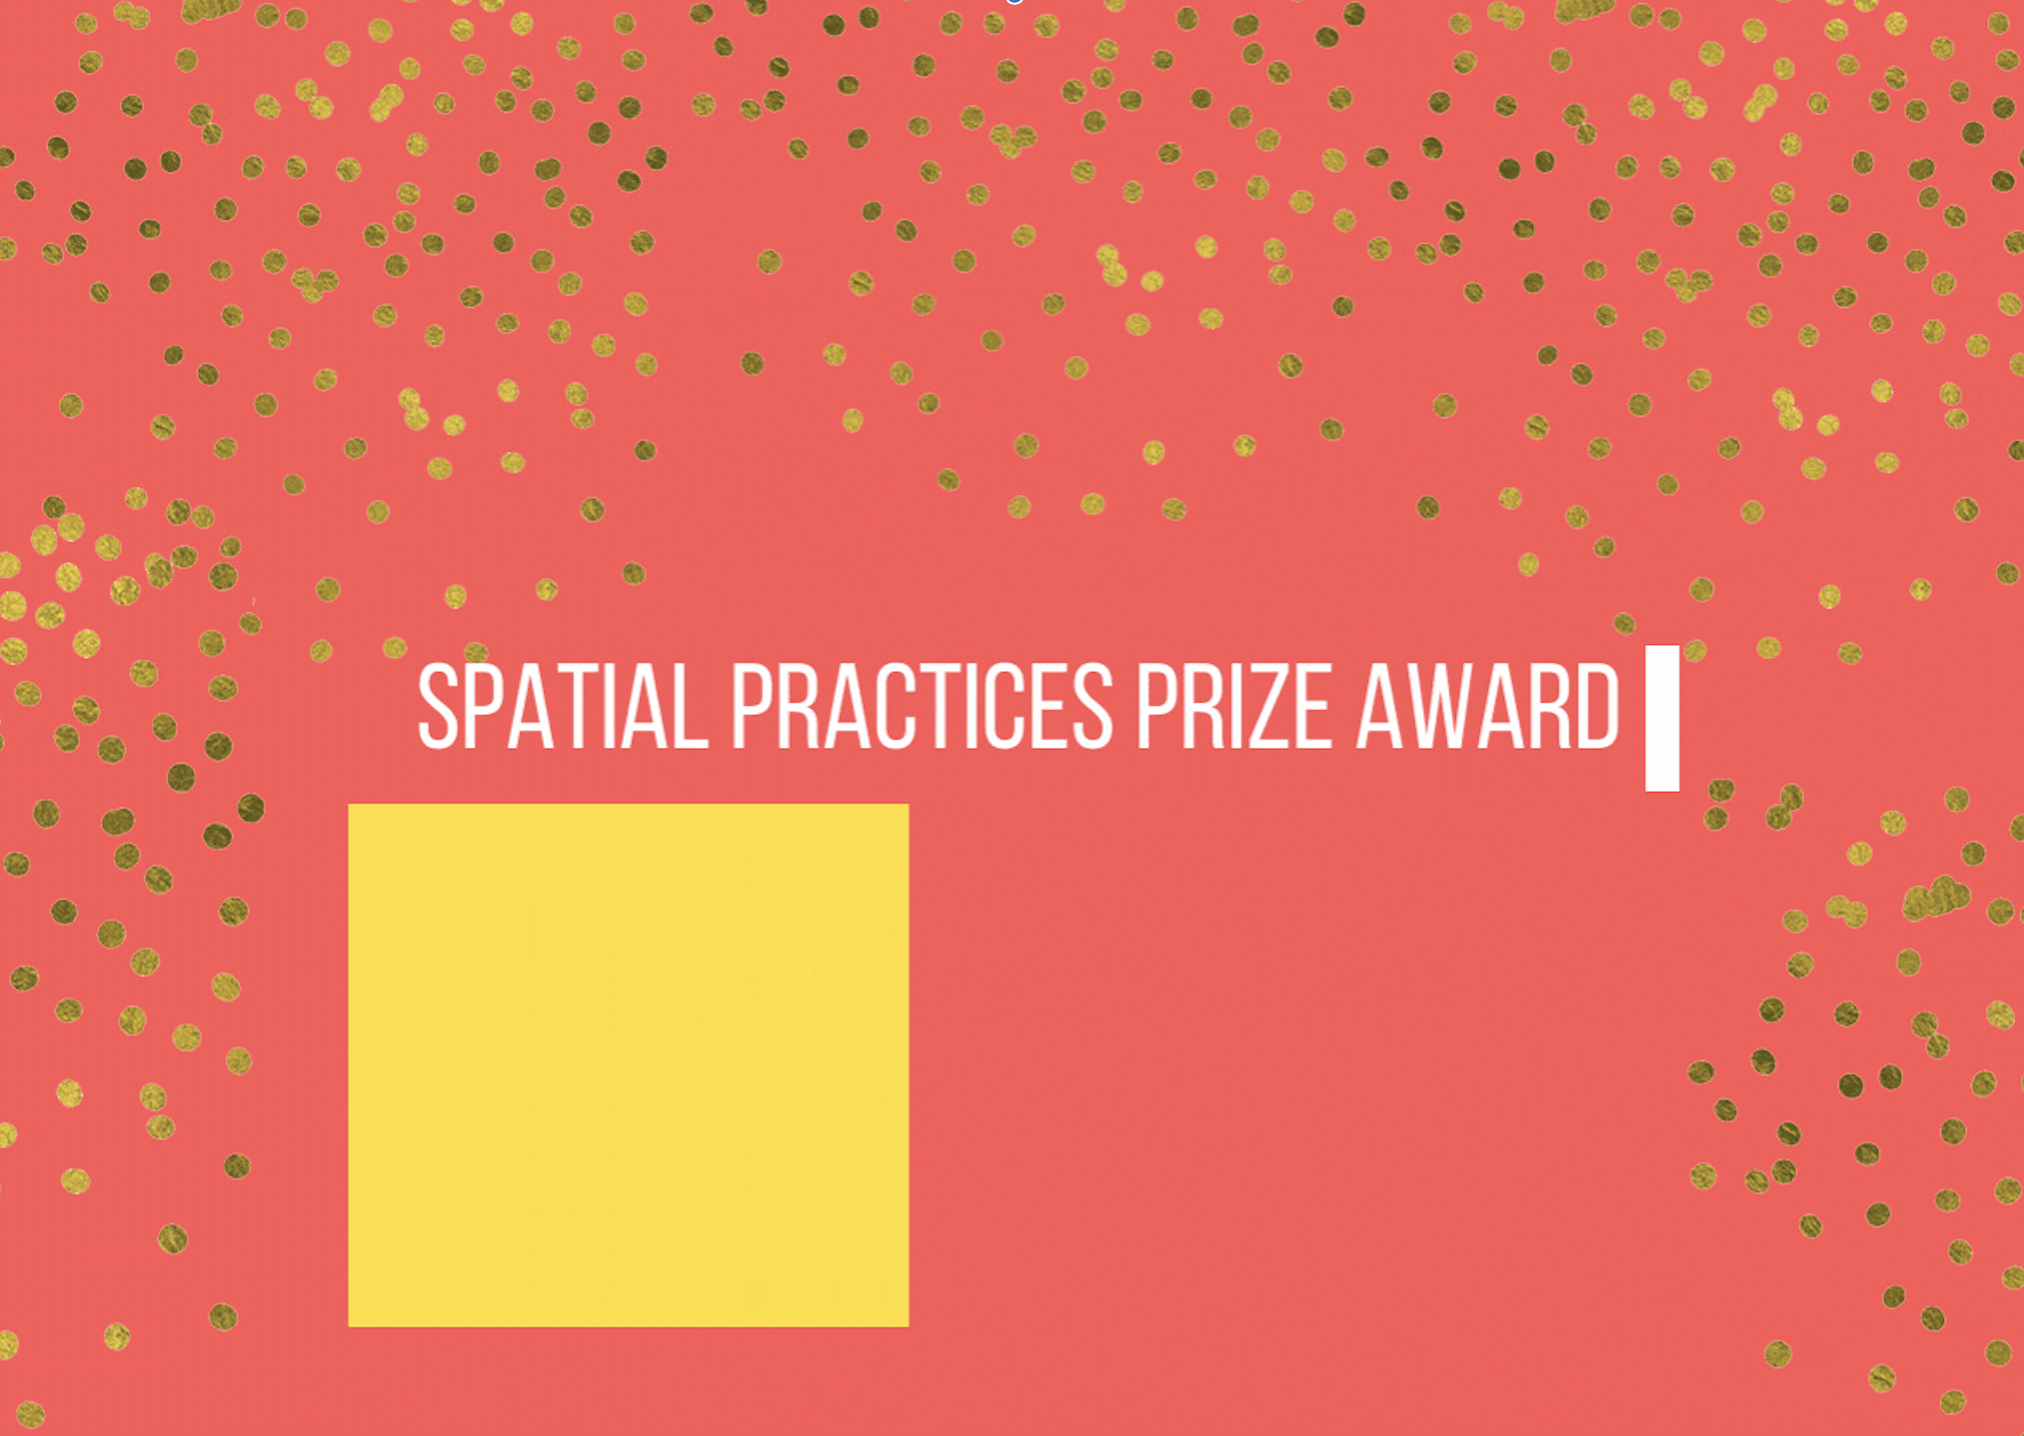 golden glitter on red background announcing the Spatial Practices Awards in white capital letters.